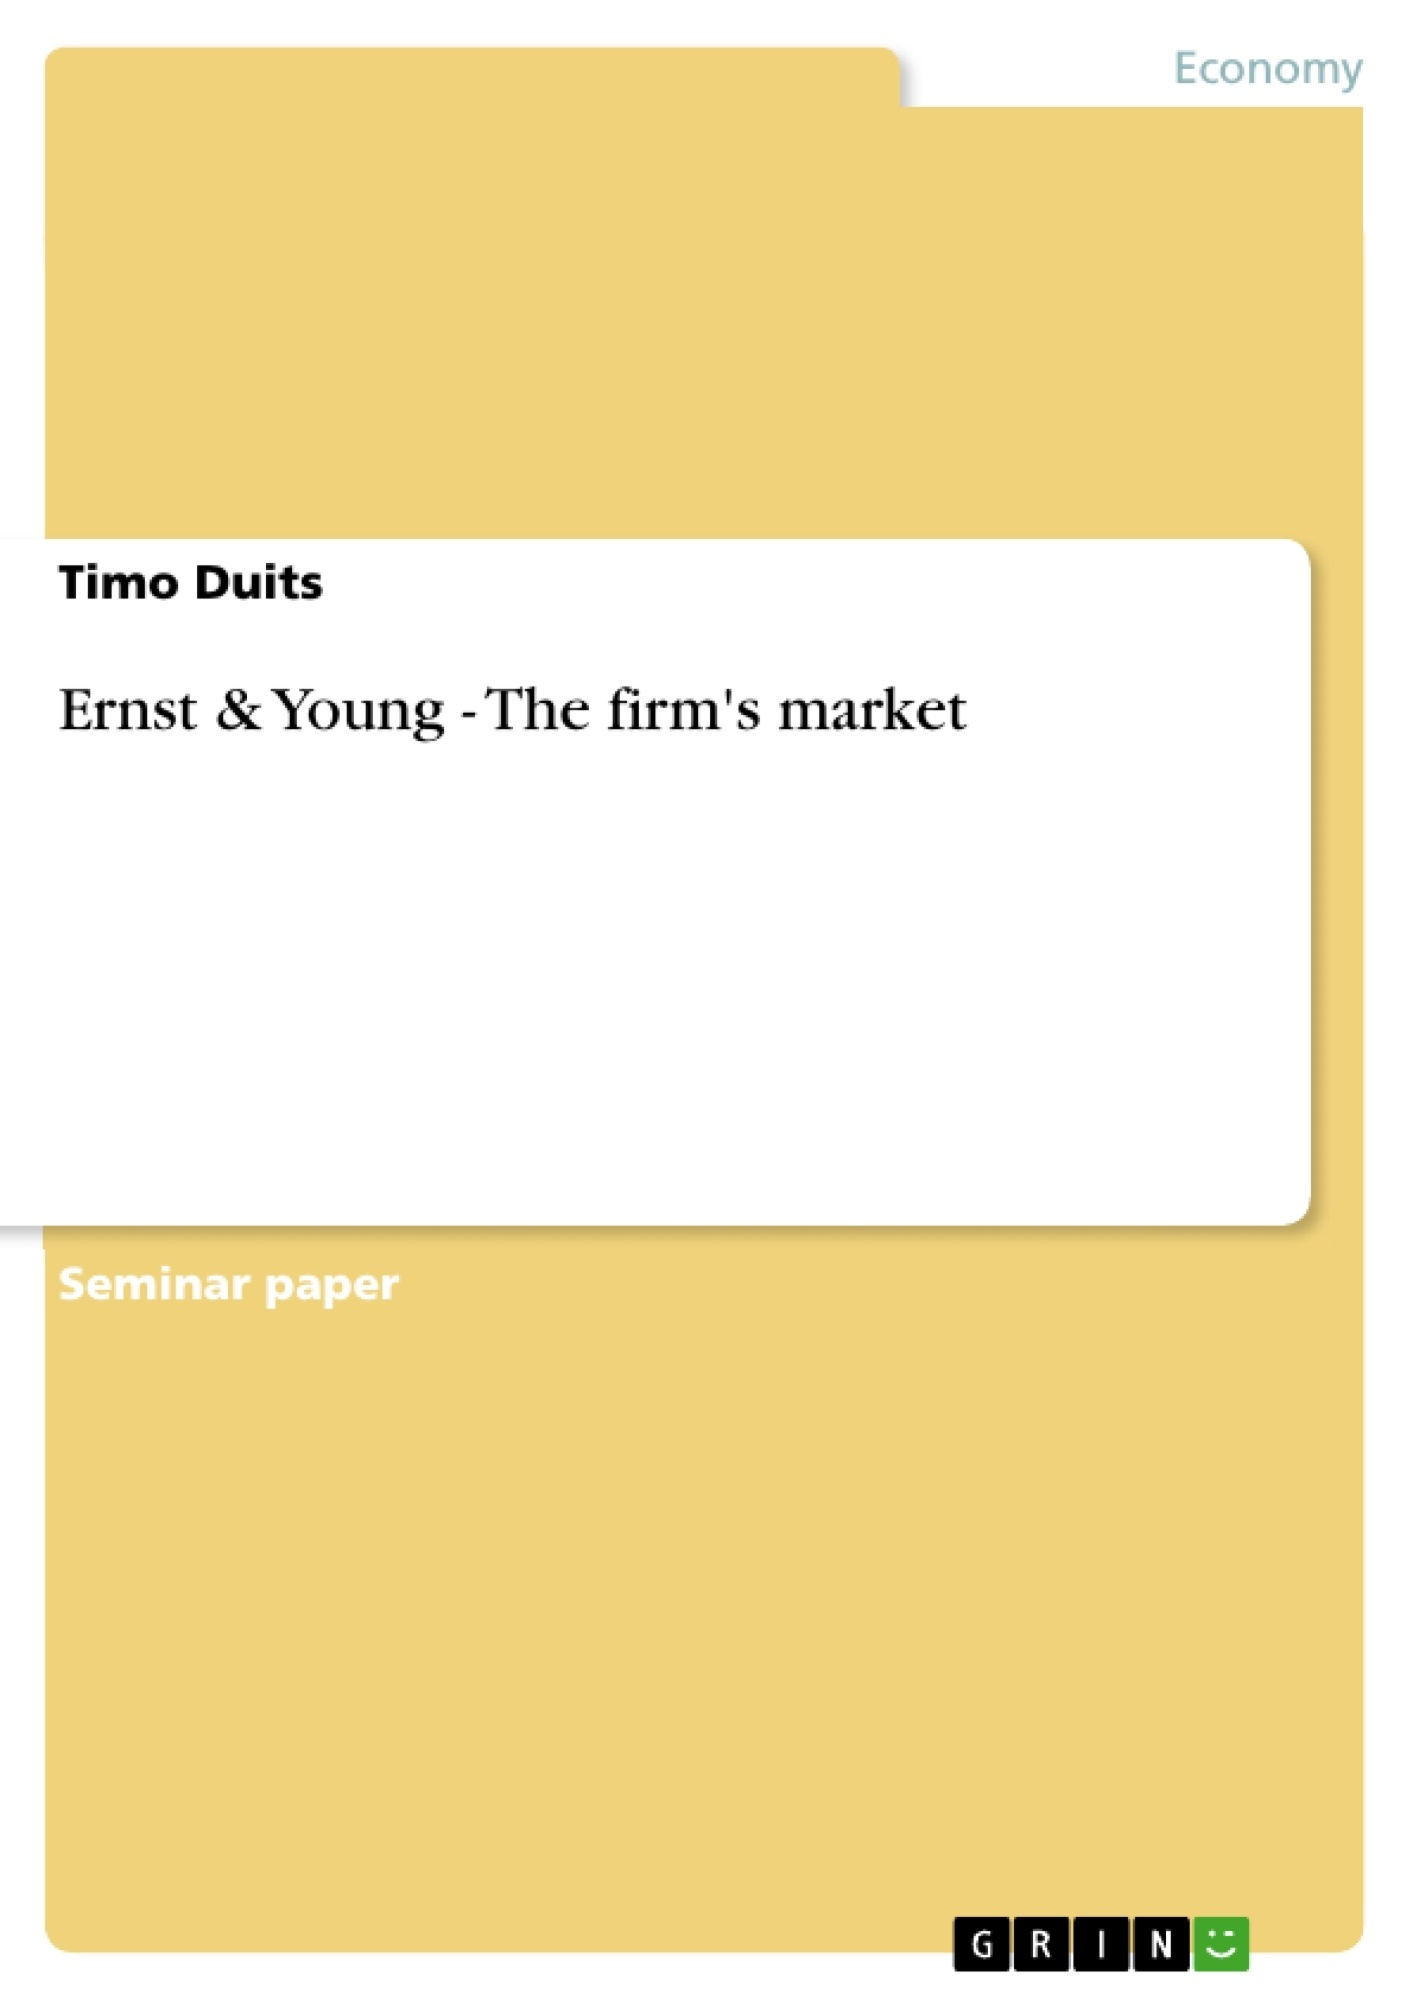 Title: Ernst & Young - The firm's market